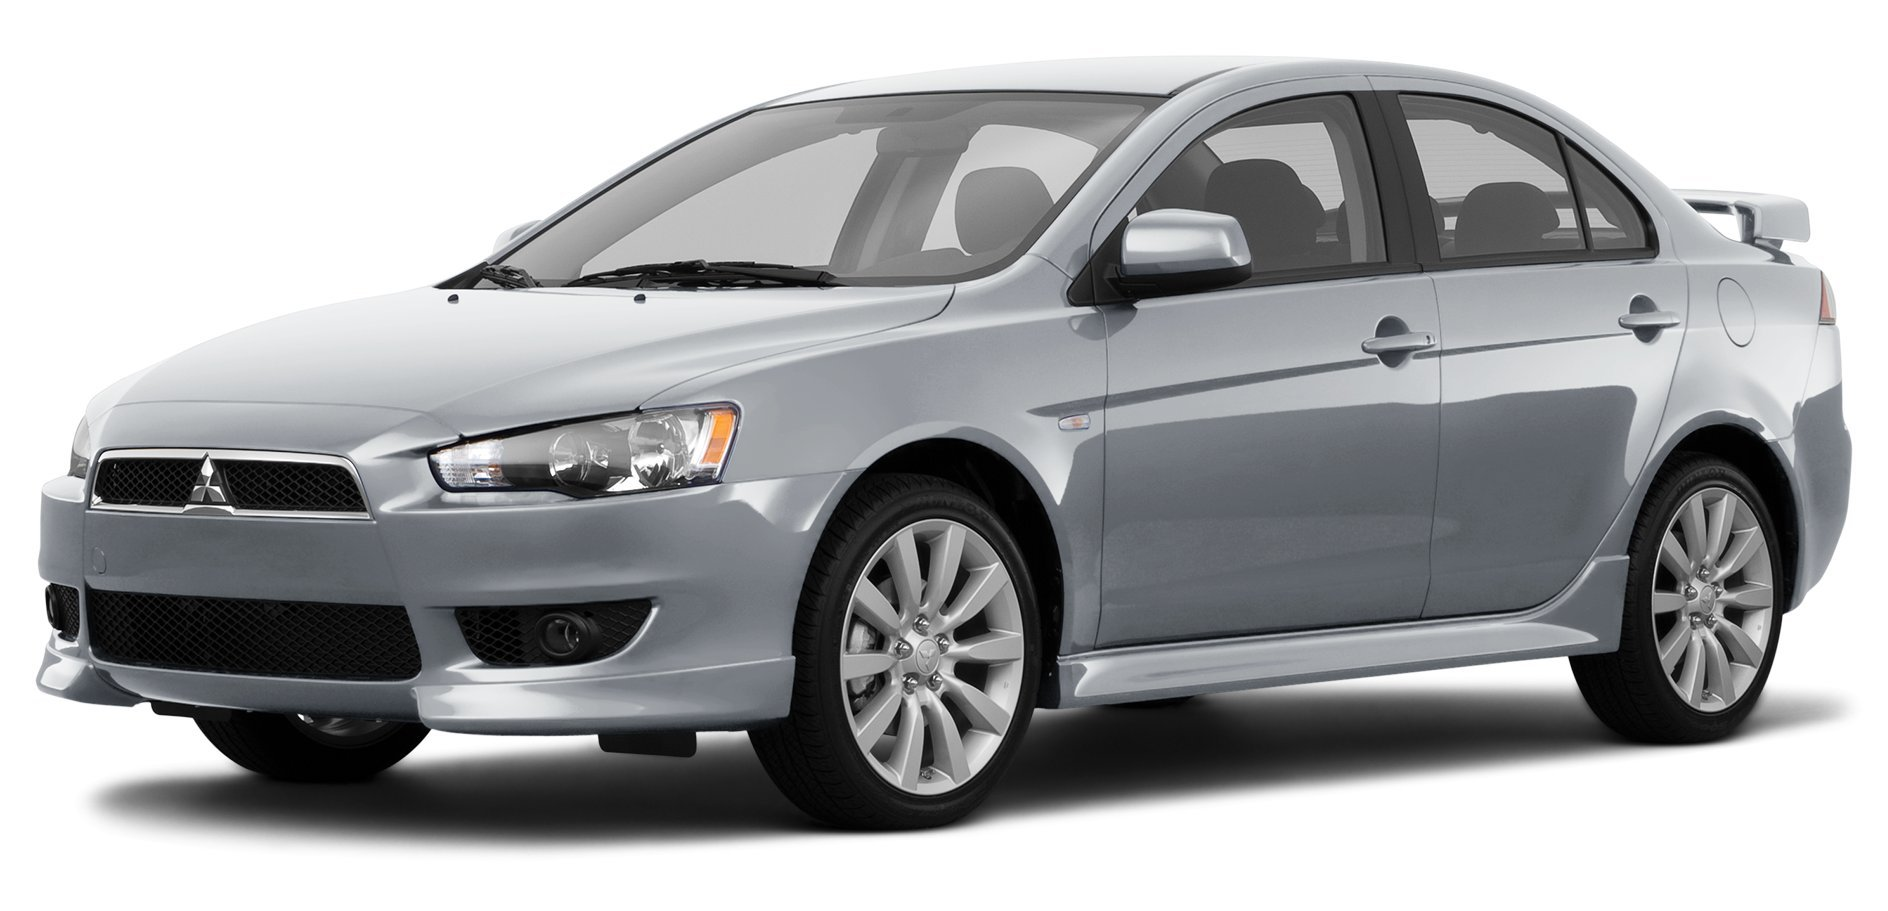 Amazon.com: 2011 Mitsubishi Lancer Reviews, Images, And